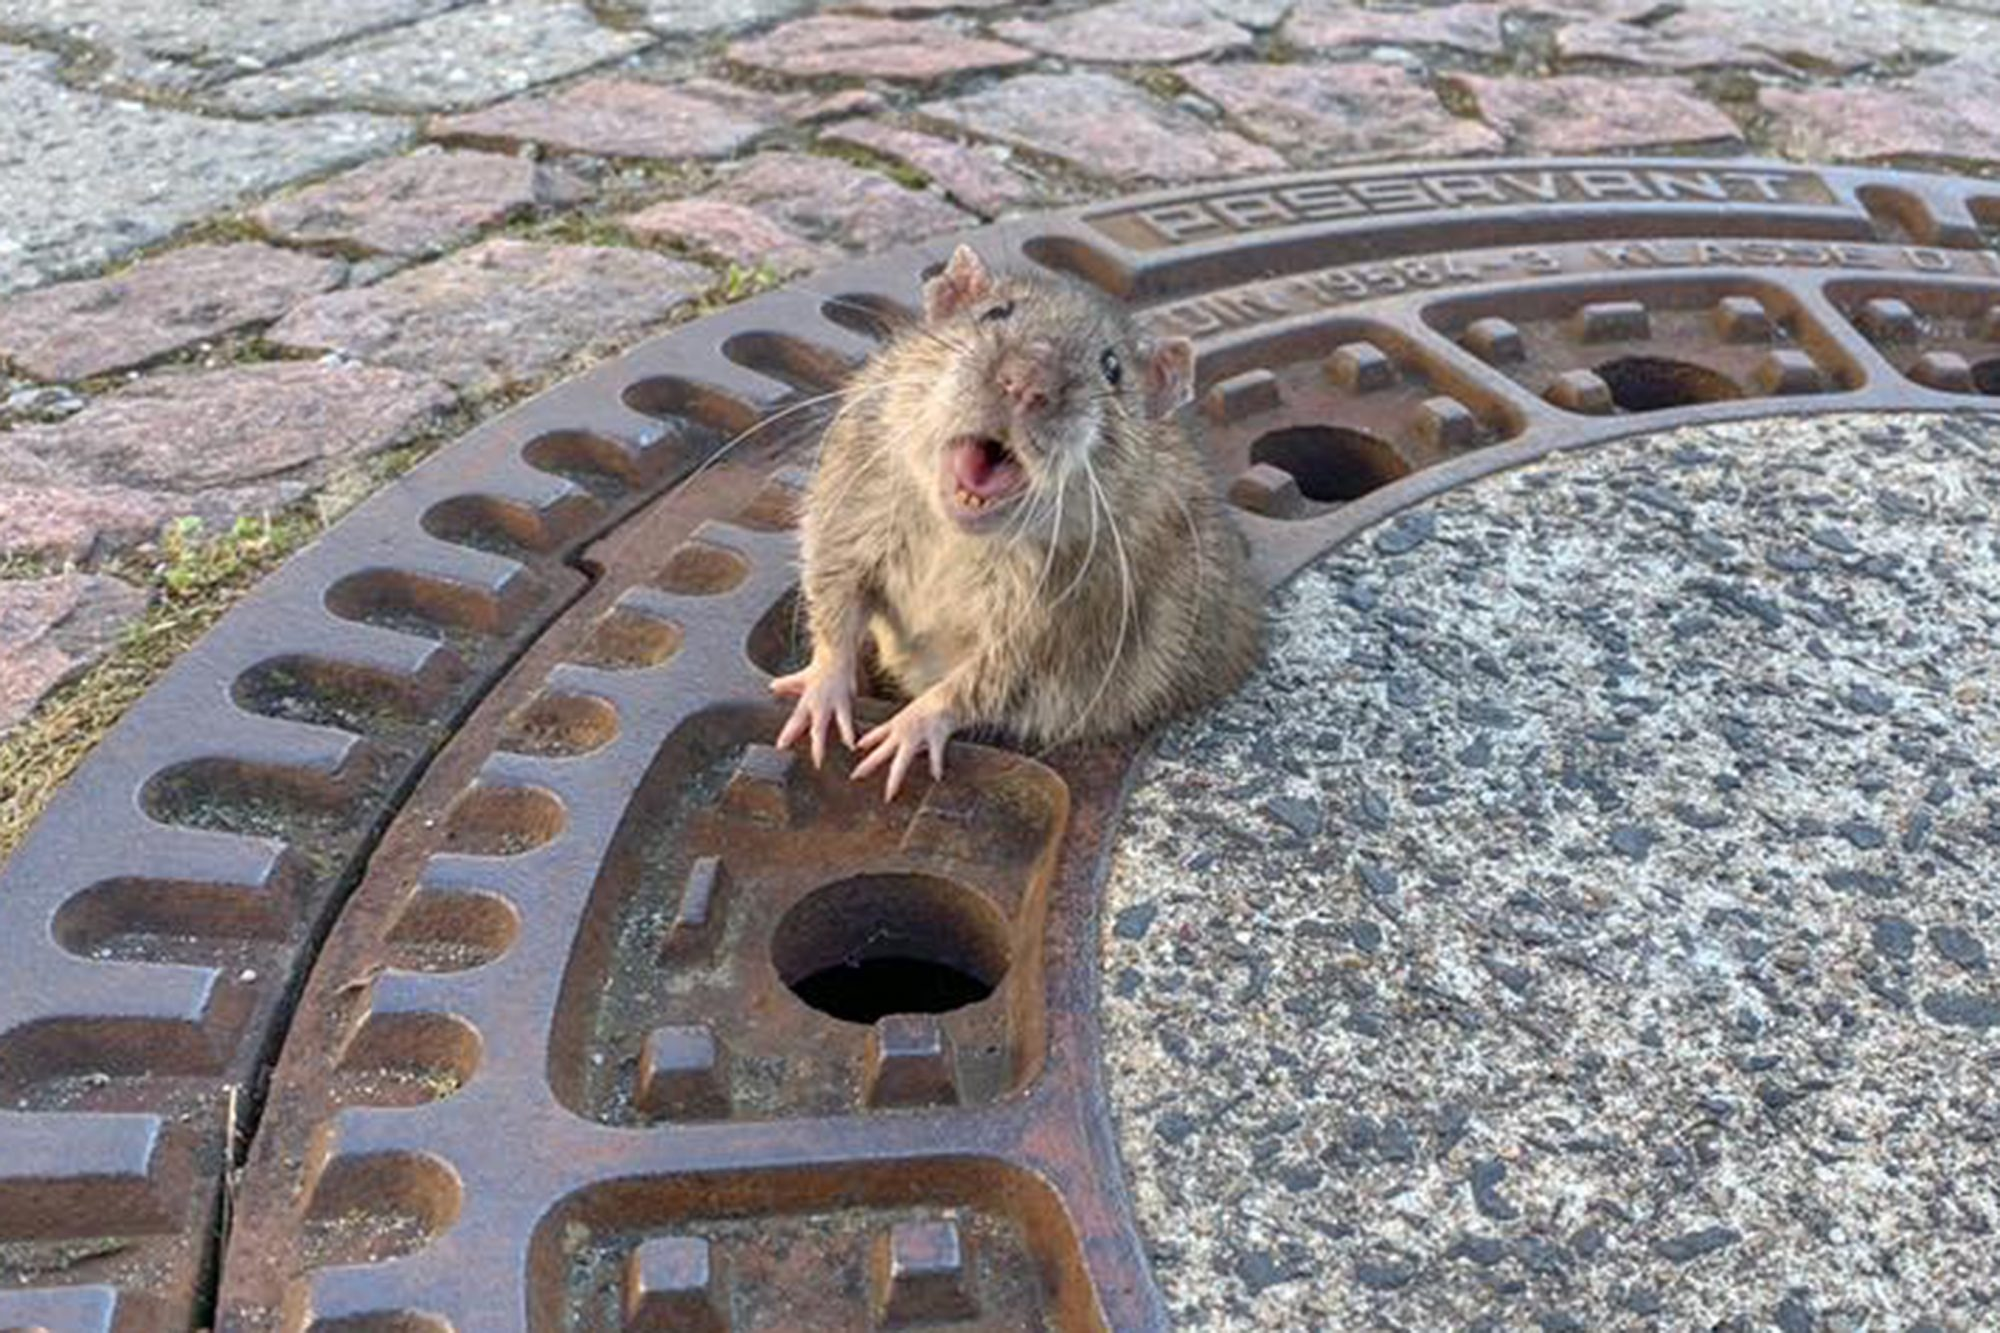 Fat Rat Gets Stuck in Sewer Grate & Prompts Large Rescue Operation